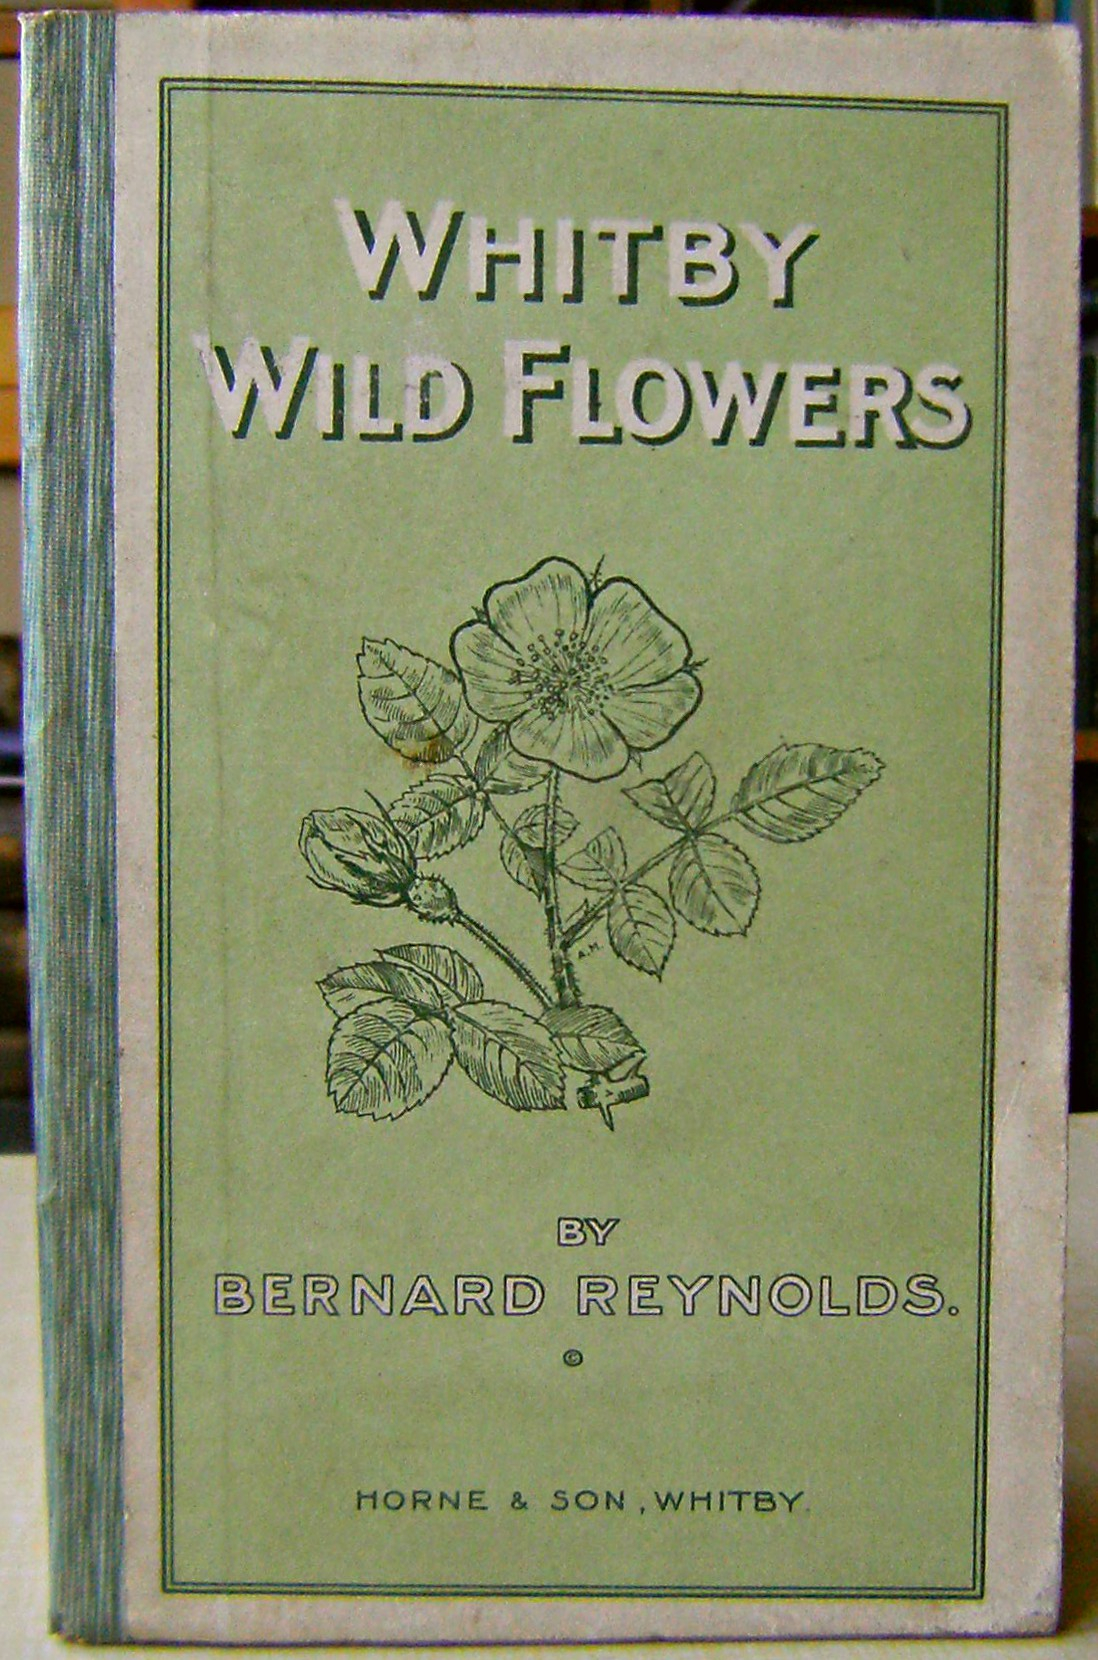 Image for Whitby Wild Flowers. A Complete Botanic List Of The Flowers, Grasses, And Ferns Of The Whitby District With Notes On Their History And Habitats.